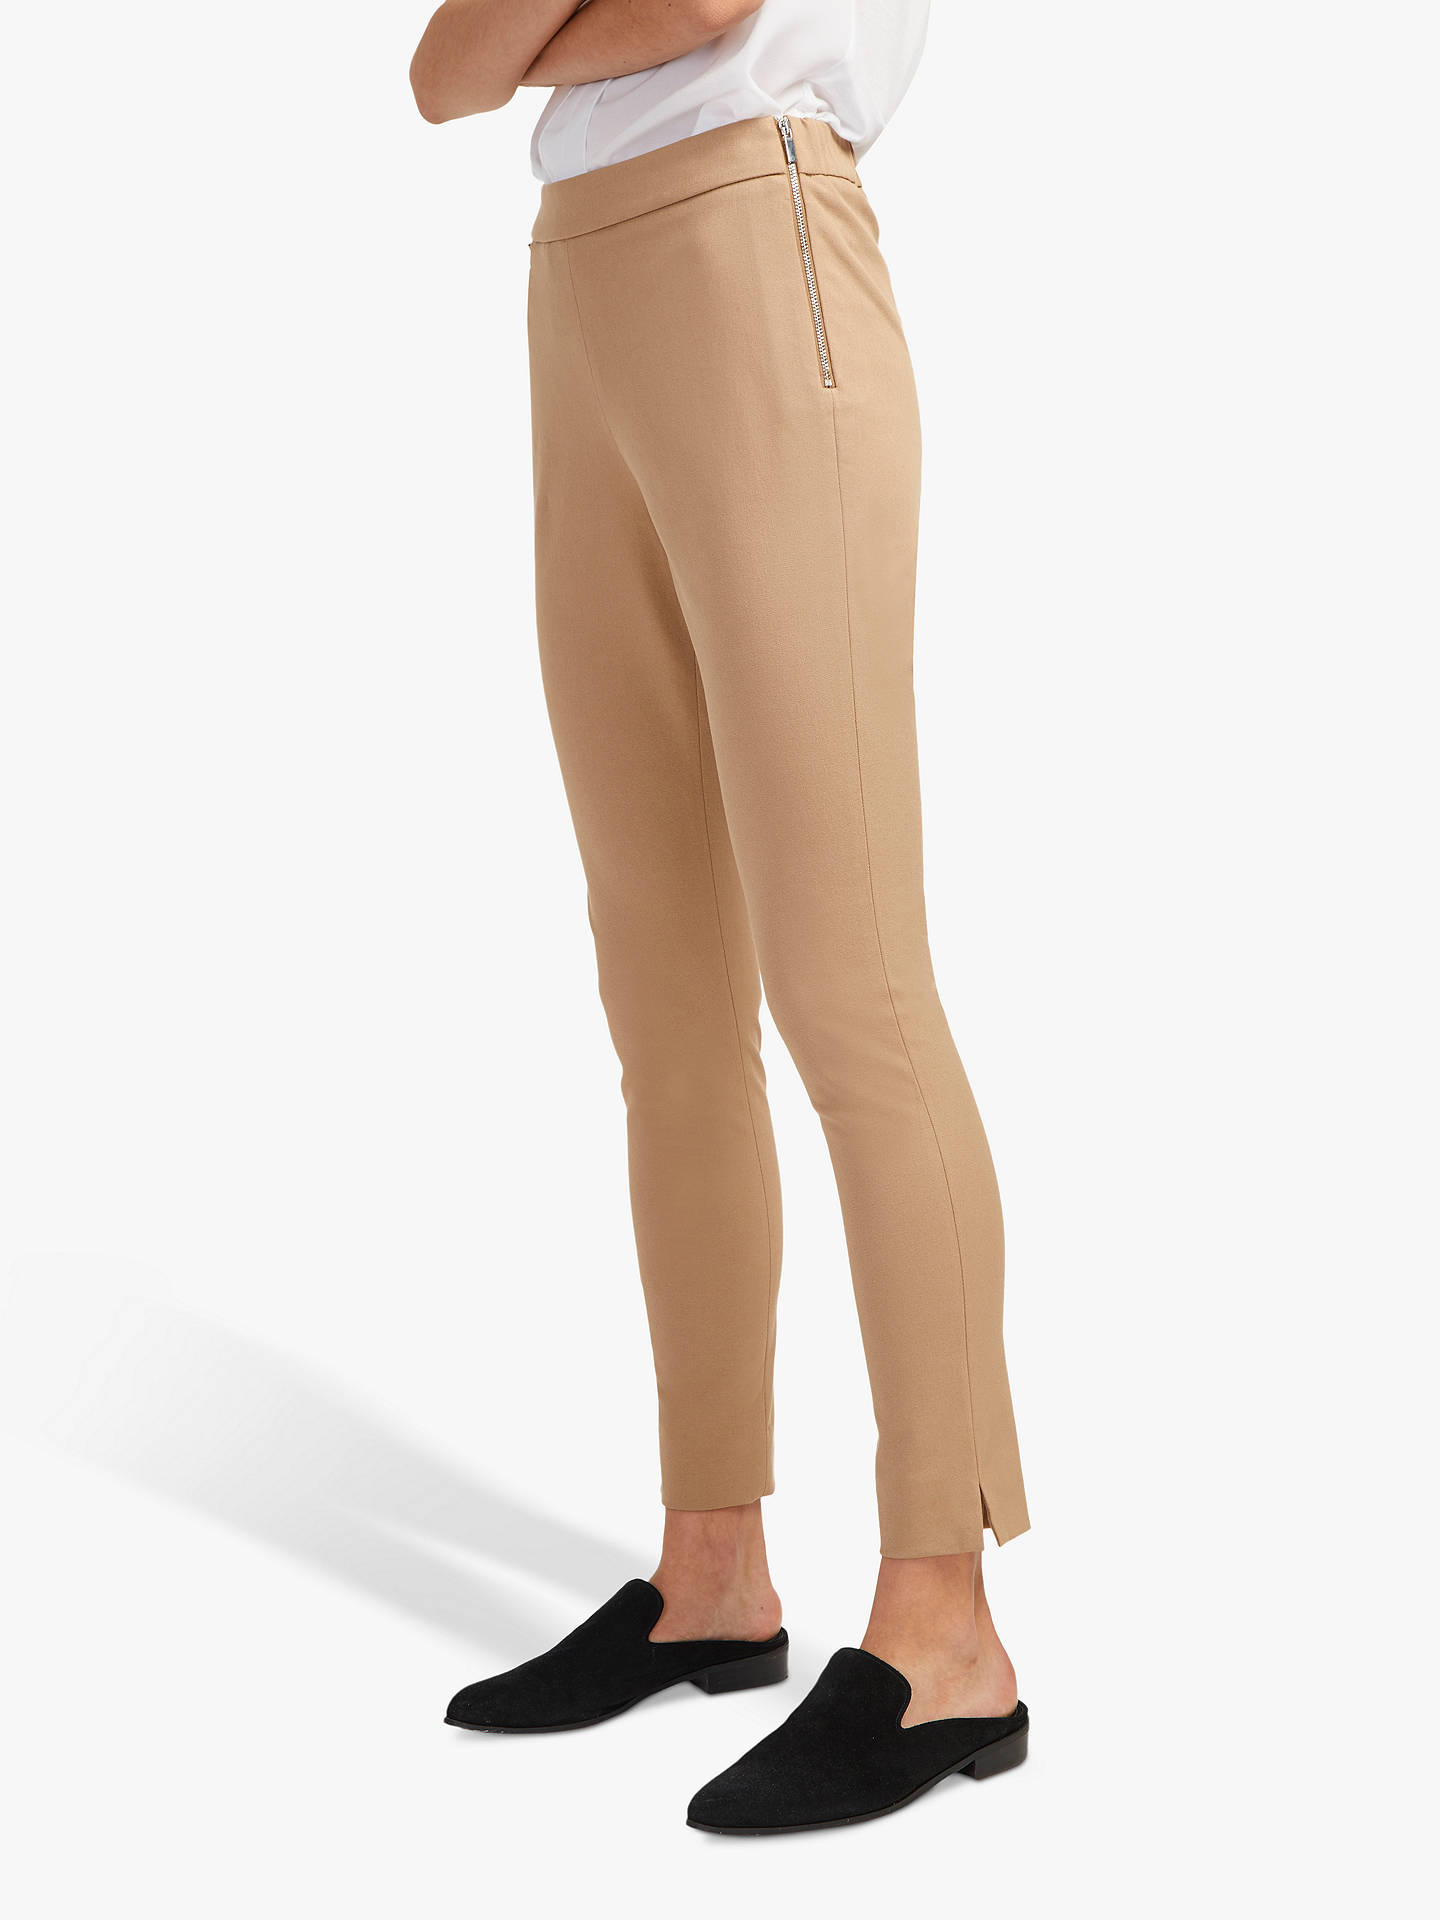 French Connection Kara Skinny Trousers, Wet Sand by French Connection